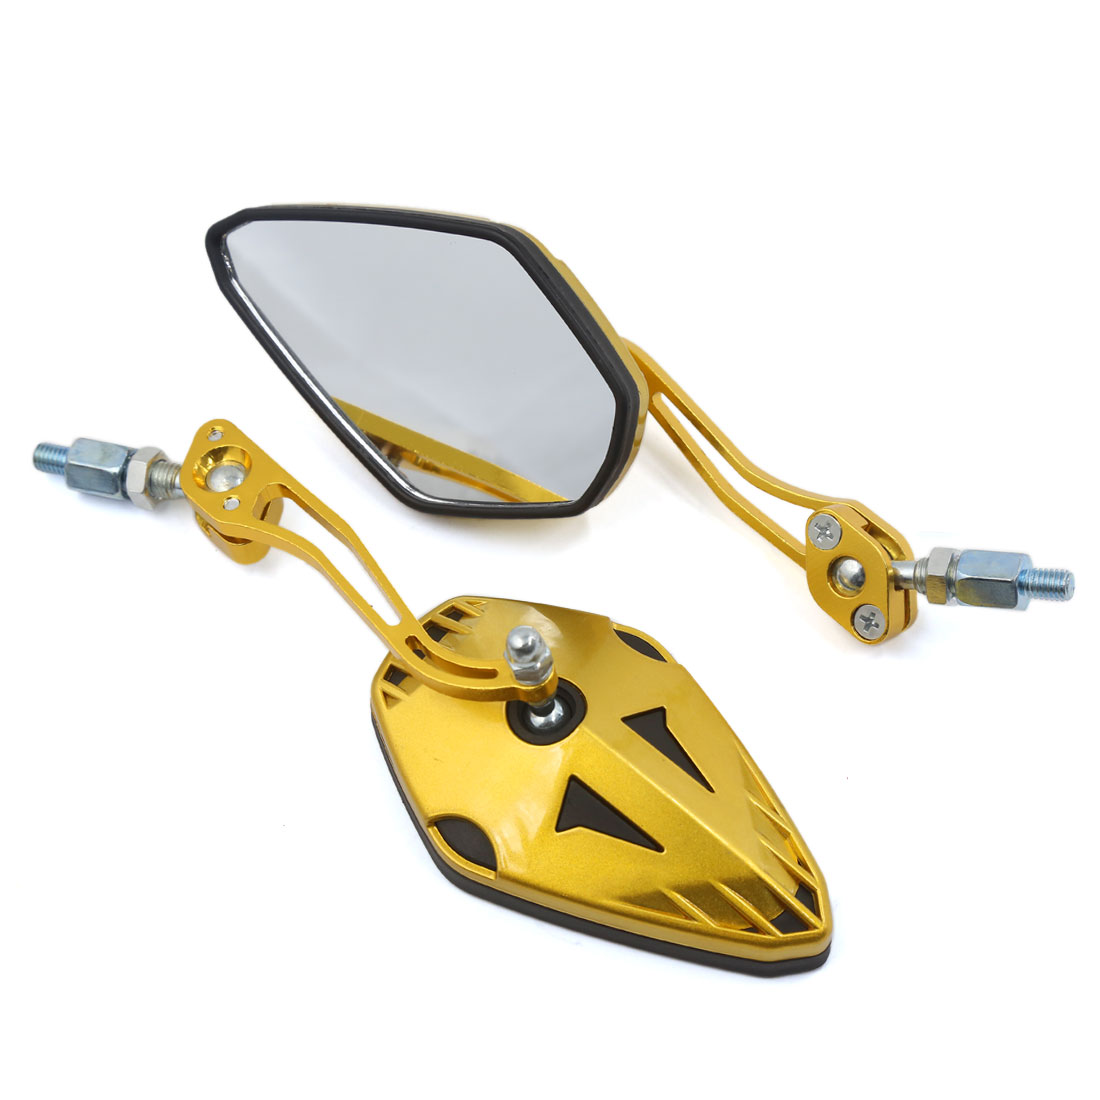 Gold Tone Shell Aluminum Alloy Stem Motorcycle Reaview Side Mirror 8mm 10mm Pair